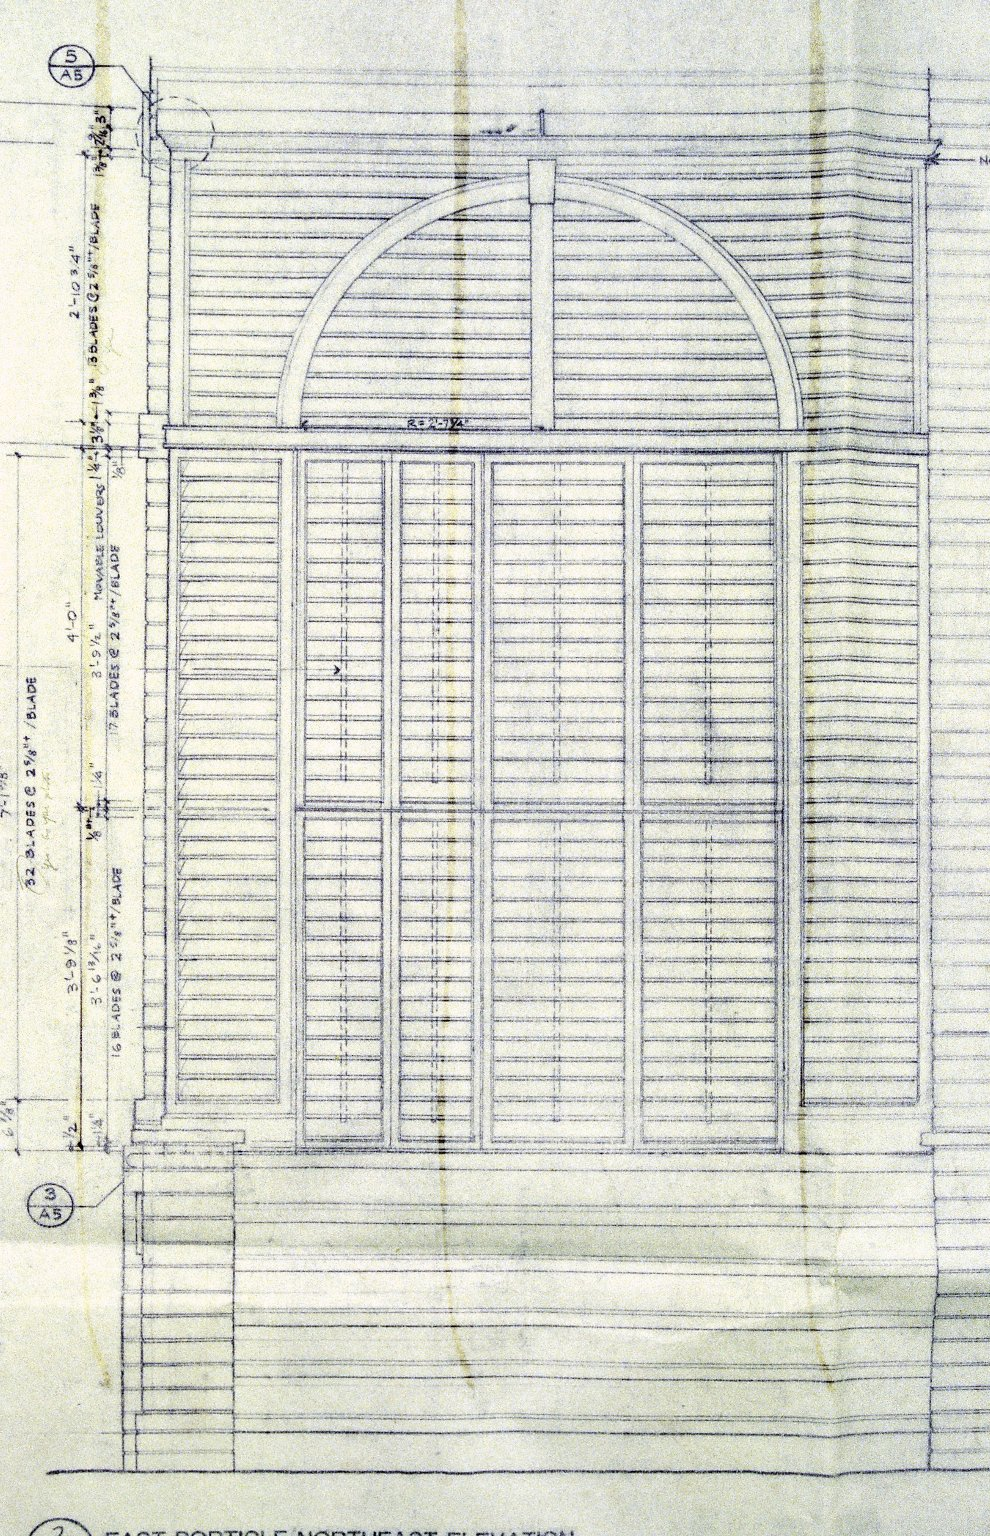 Monticello, restoration, elevation of doors to northeast arch of East Venetian porch, detail